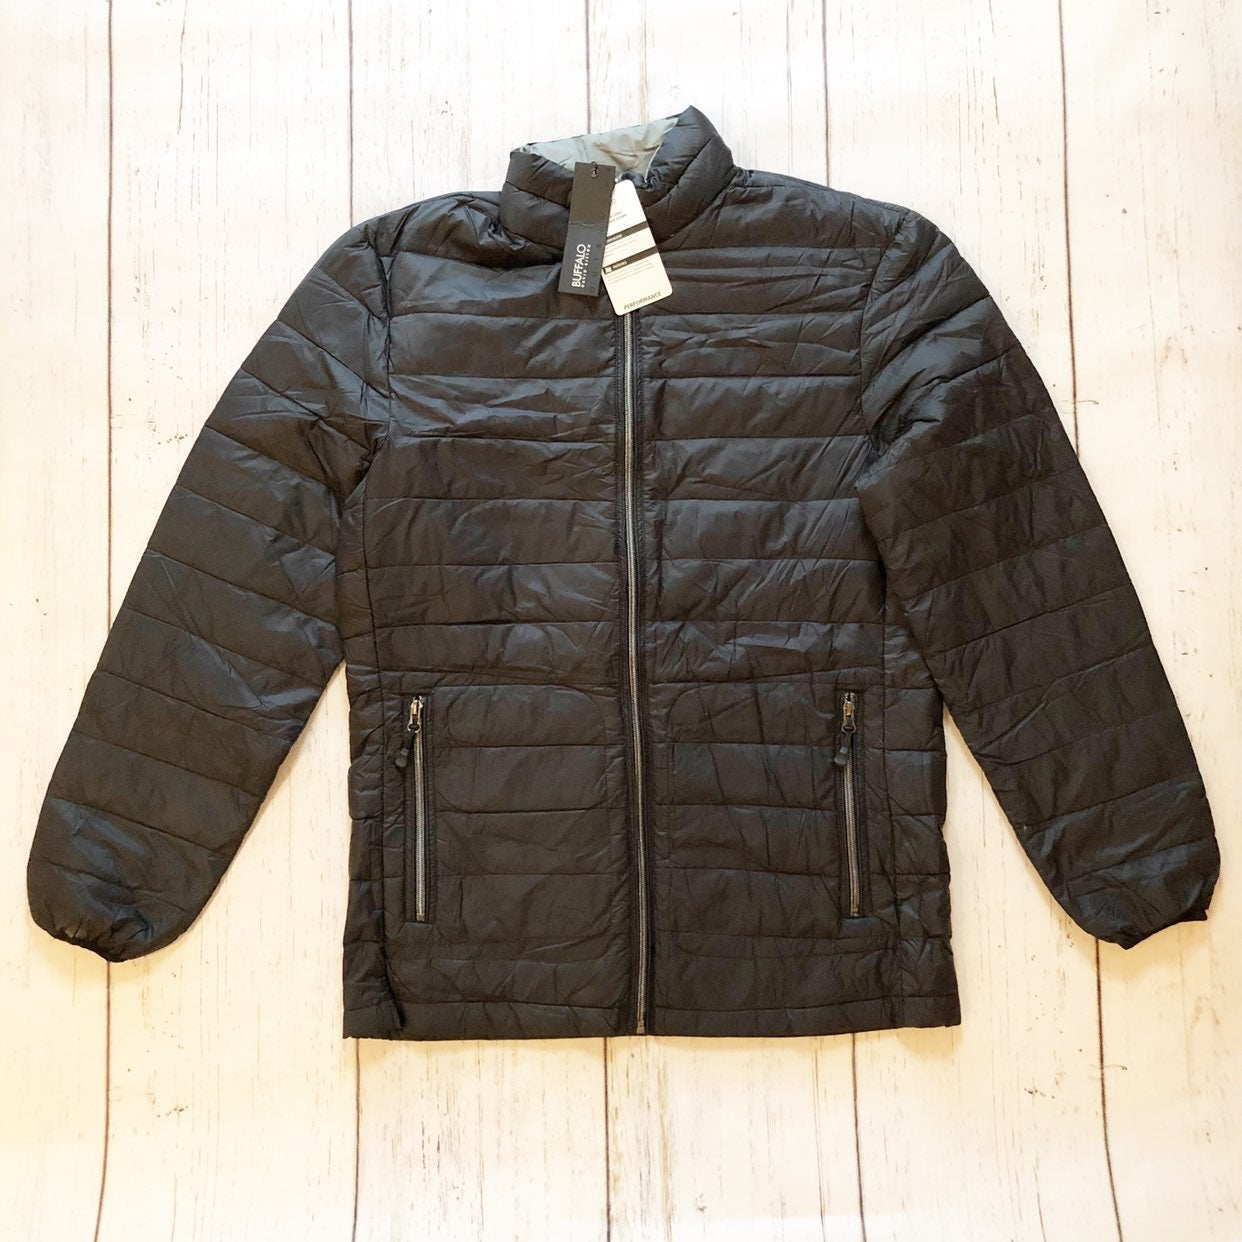 Buffalo David Bitton black puffer jacket